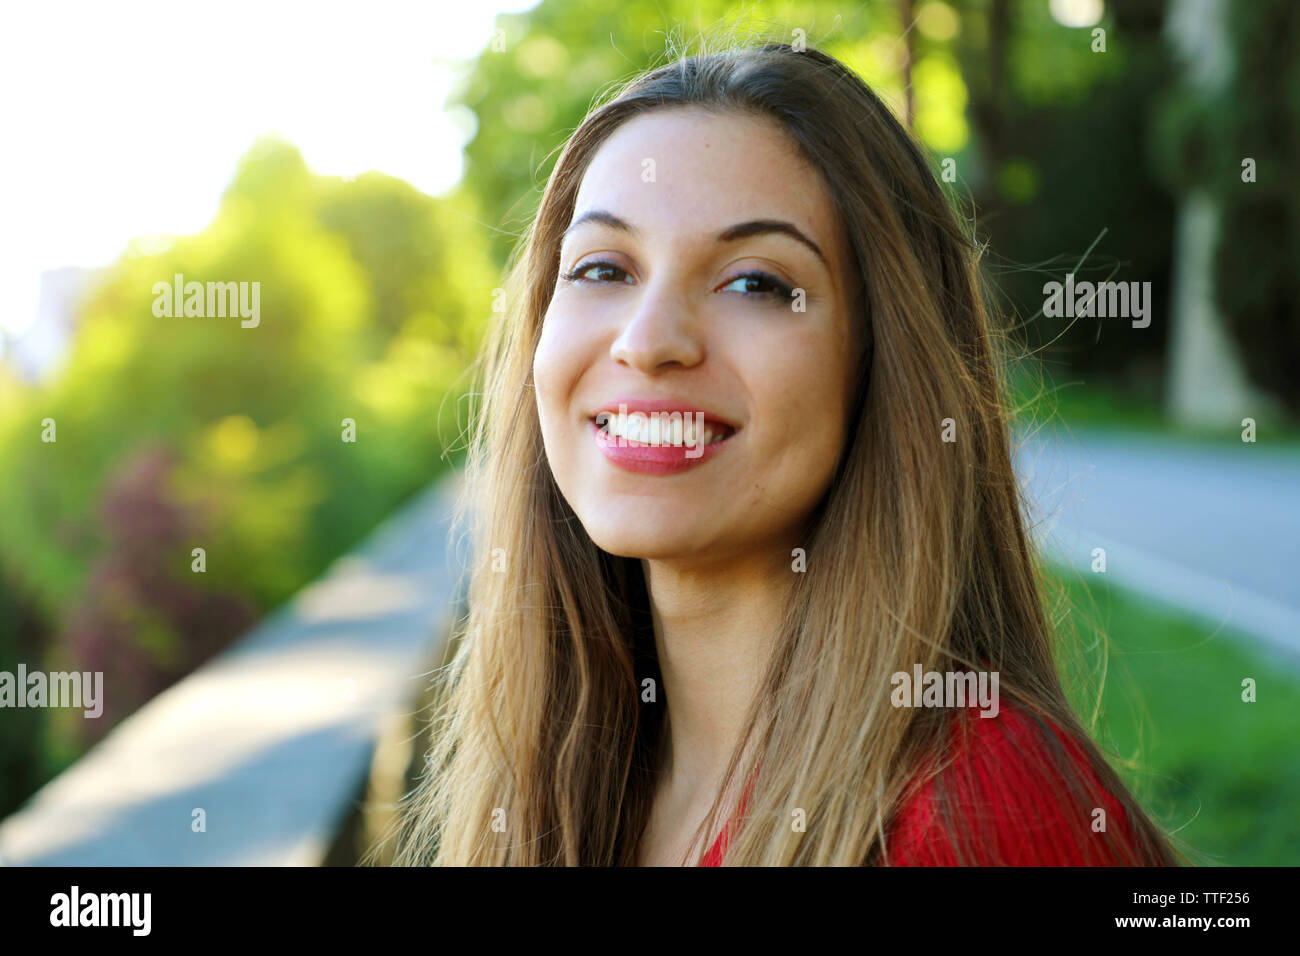 Beautiful smiling woman in the park Banque D'Images